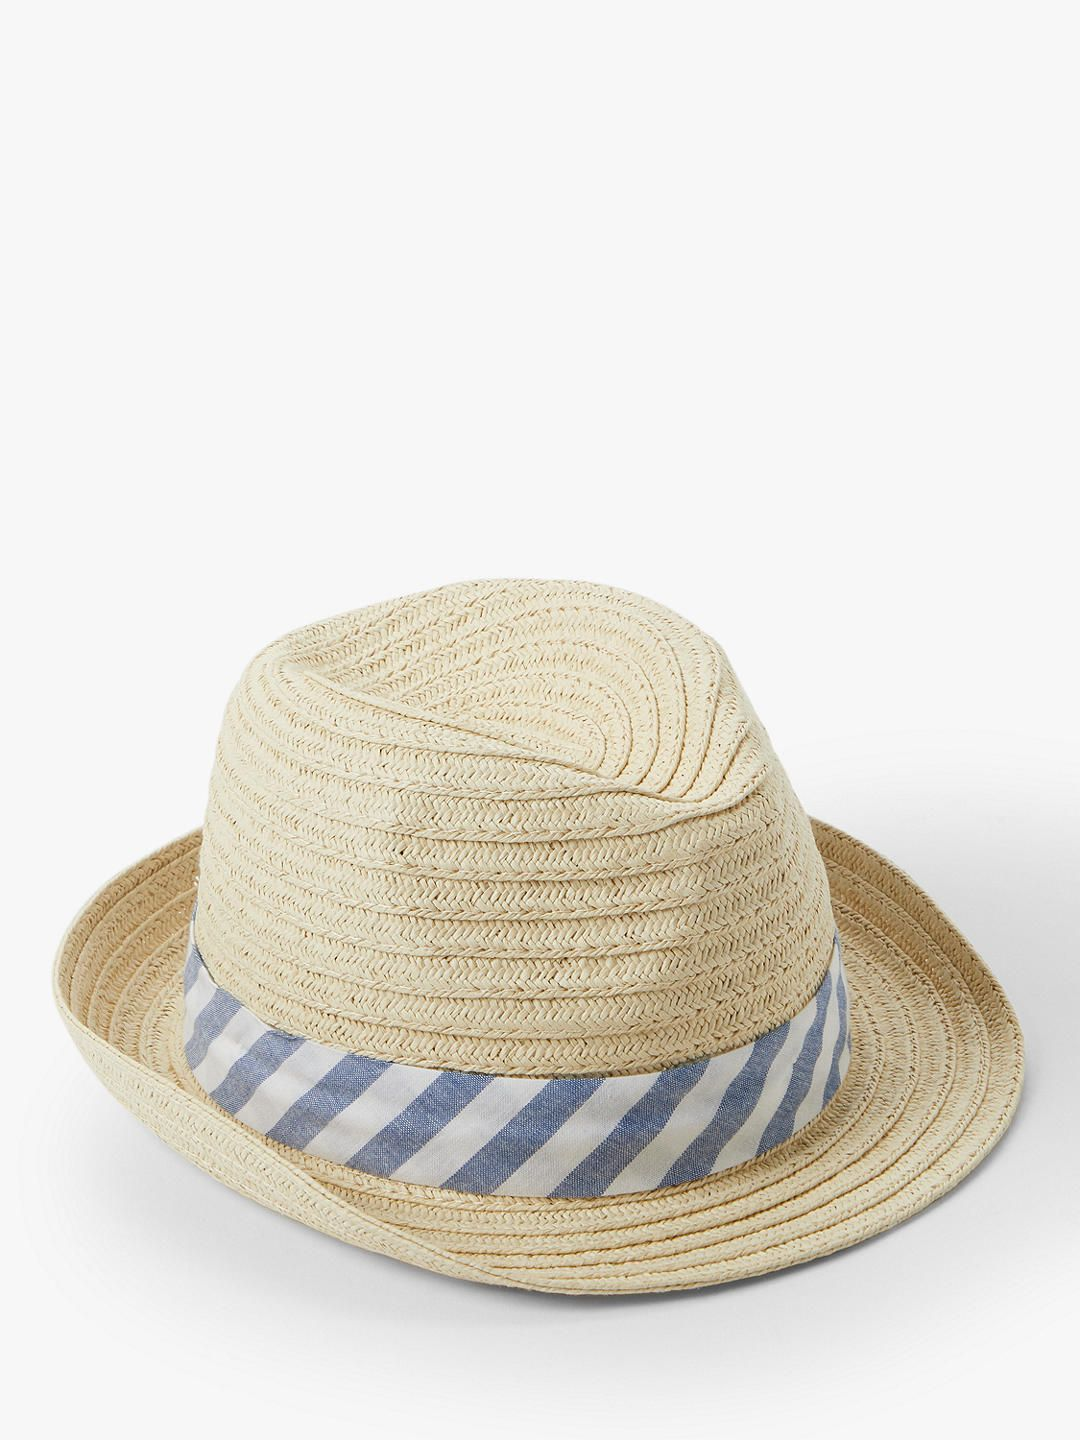 65288e1a28f7a6 John Lewis & Partners Baby's Straw Trilby Woven Hat, Natural at John Lewis  & Partners